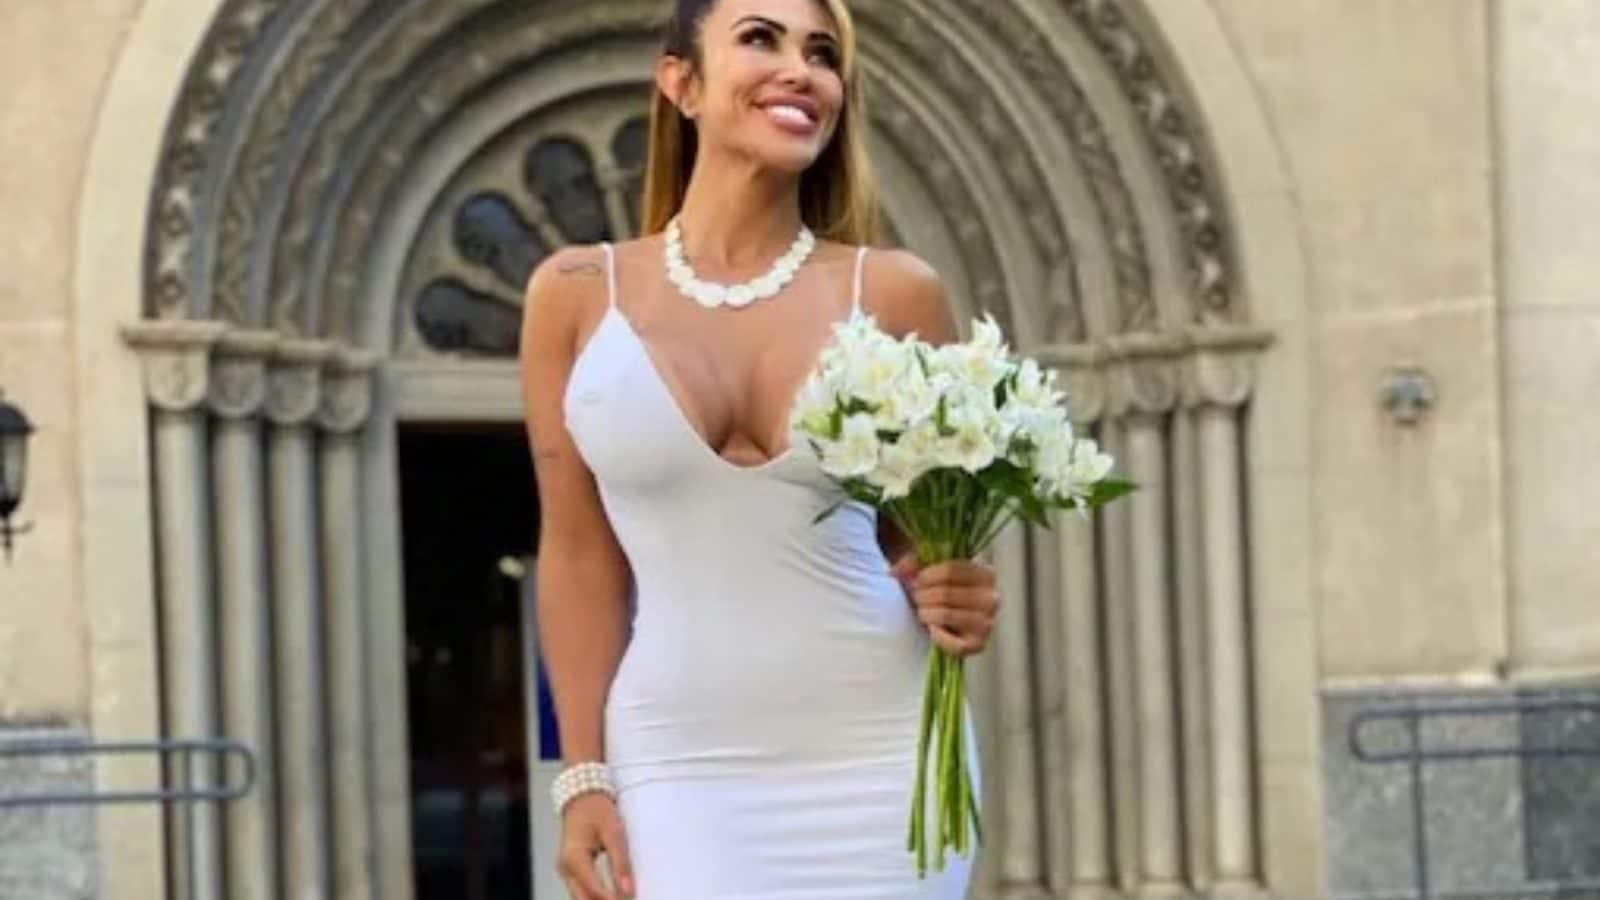 Brazilian Model, Who Married Herself, Gets Offer From Arab Sheikh. Read Her Reply